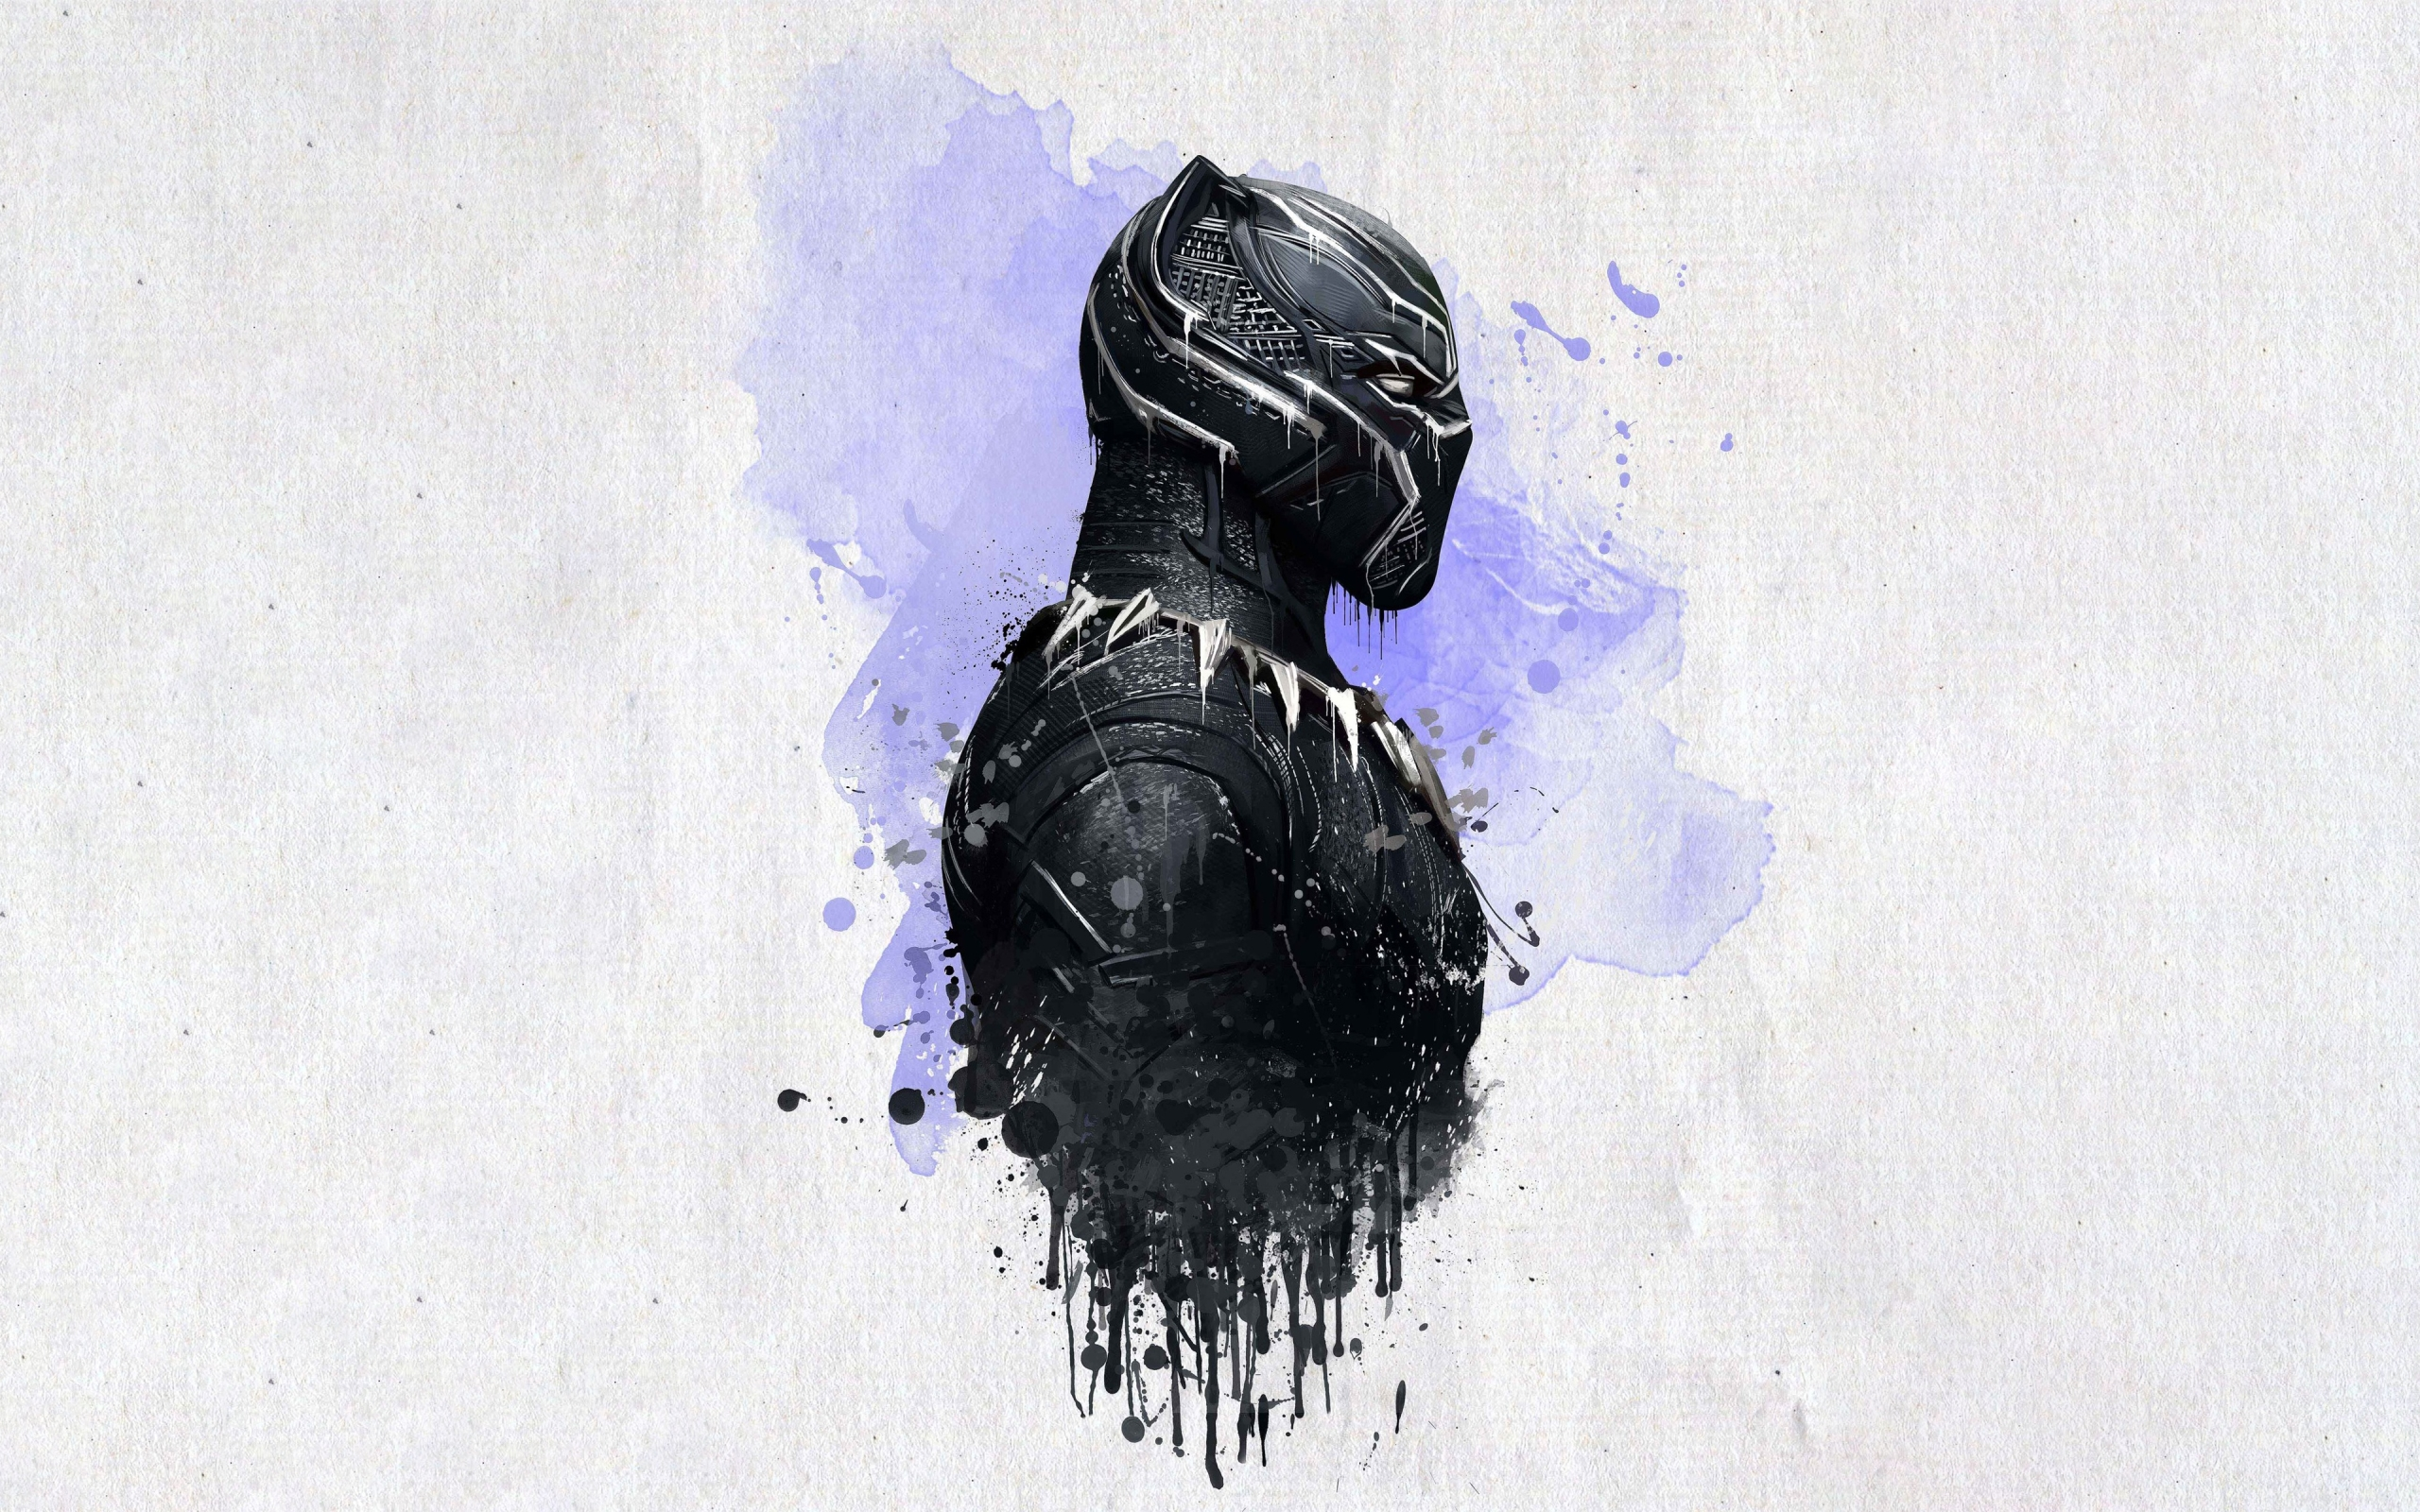 Wallpaper Of Avengers Infinity War Black Panther Marvel